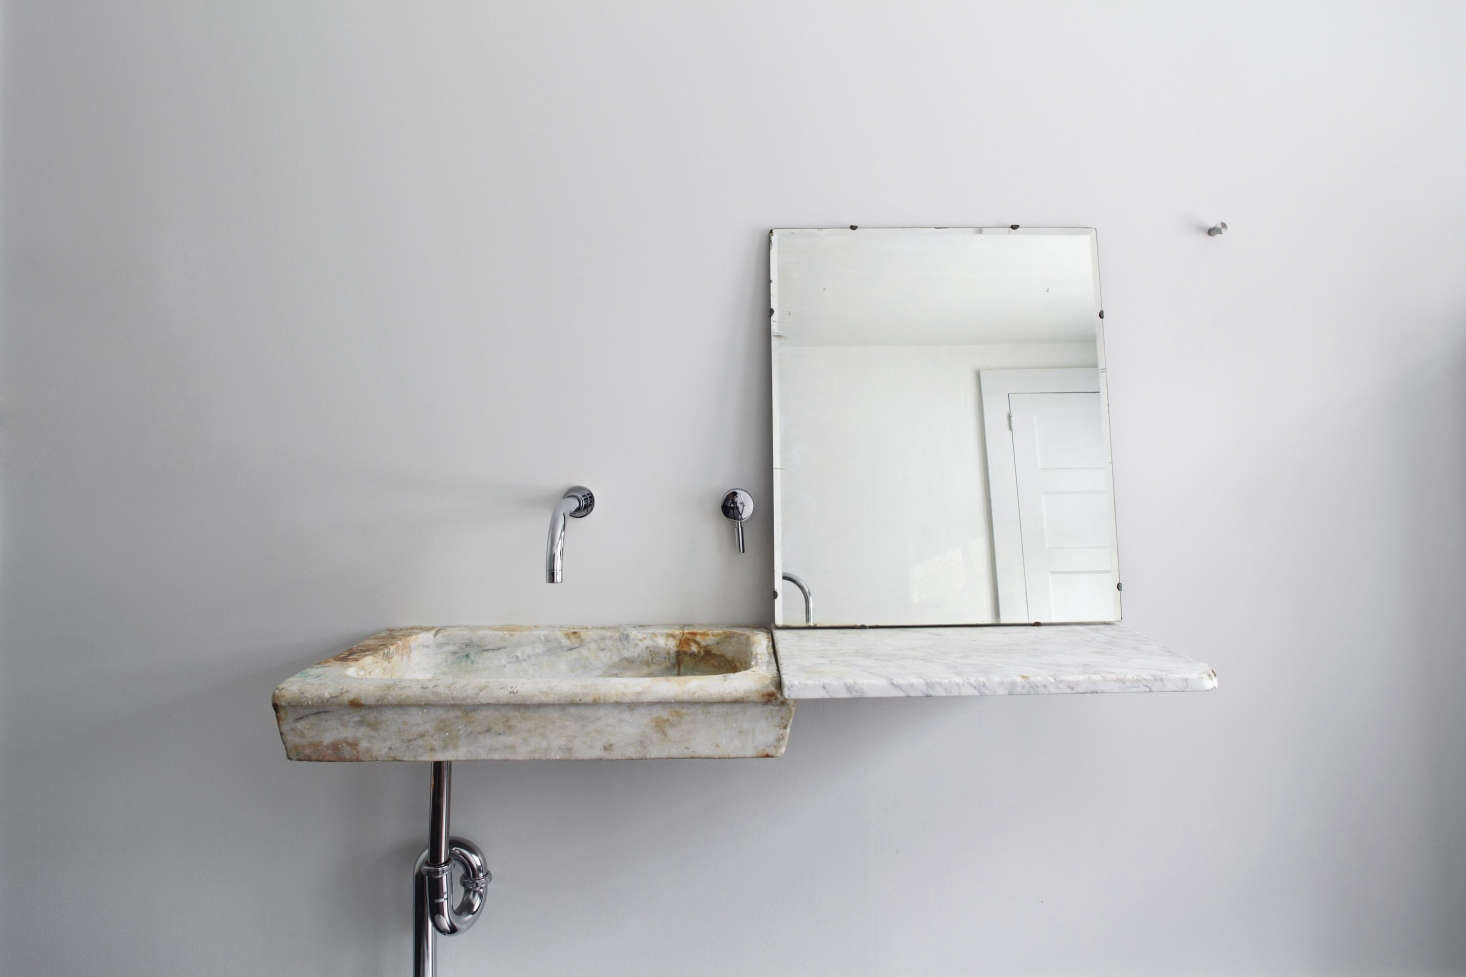 An 18th-century Italian marble sink seems to hover, thanks to angled supports concealed in the wall. The house has 2.5 baths.